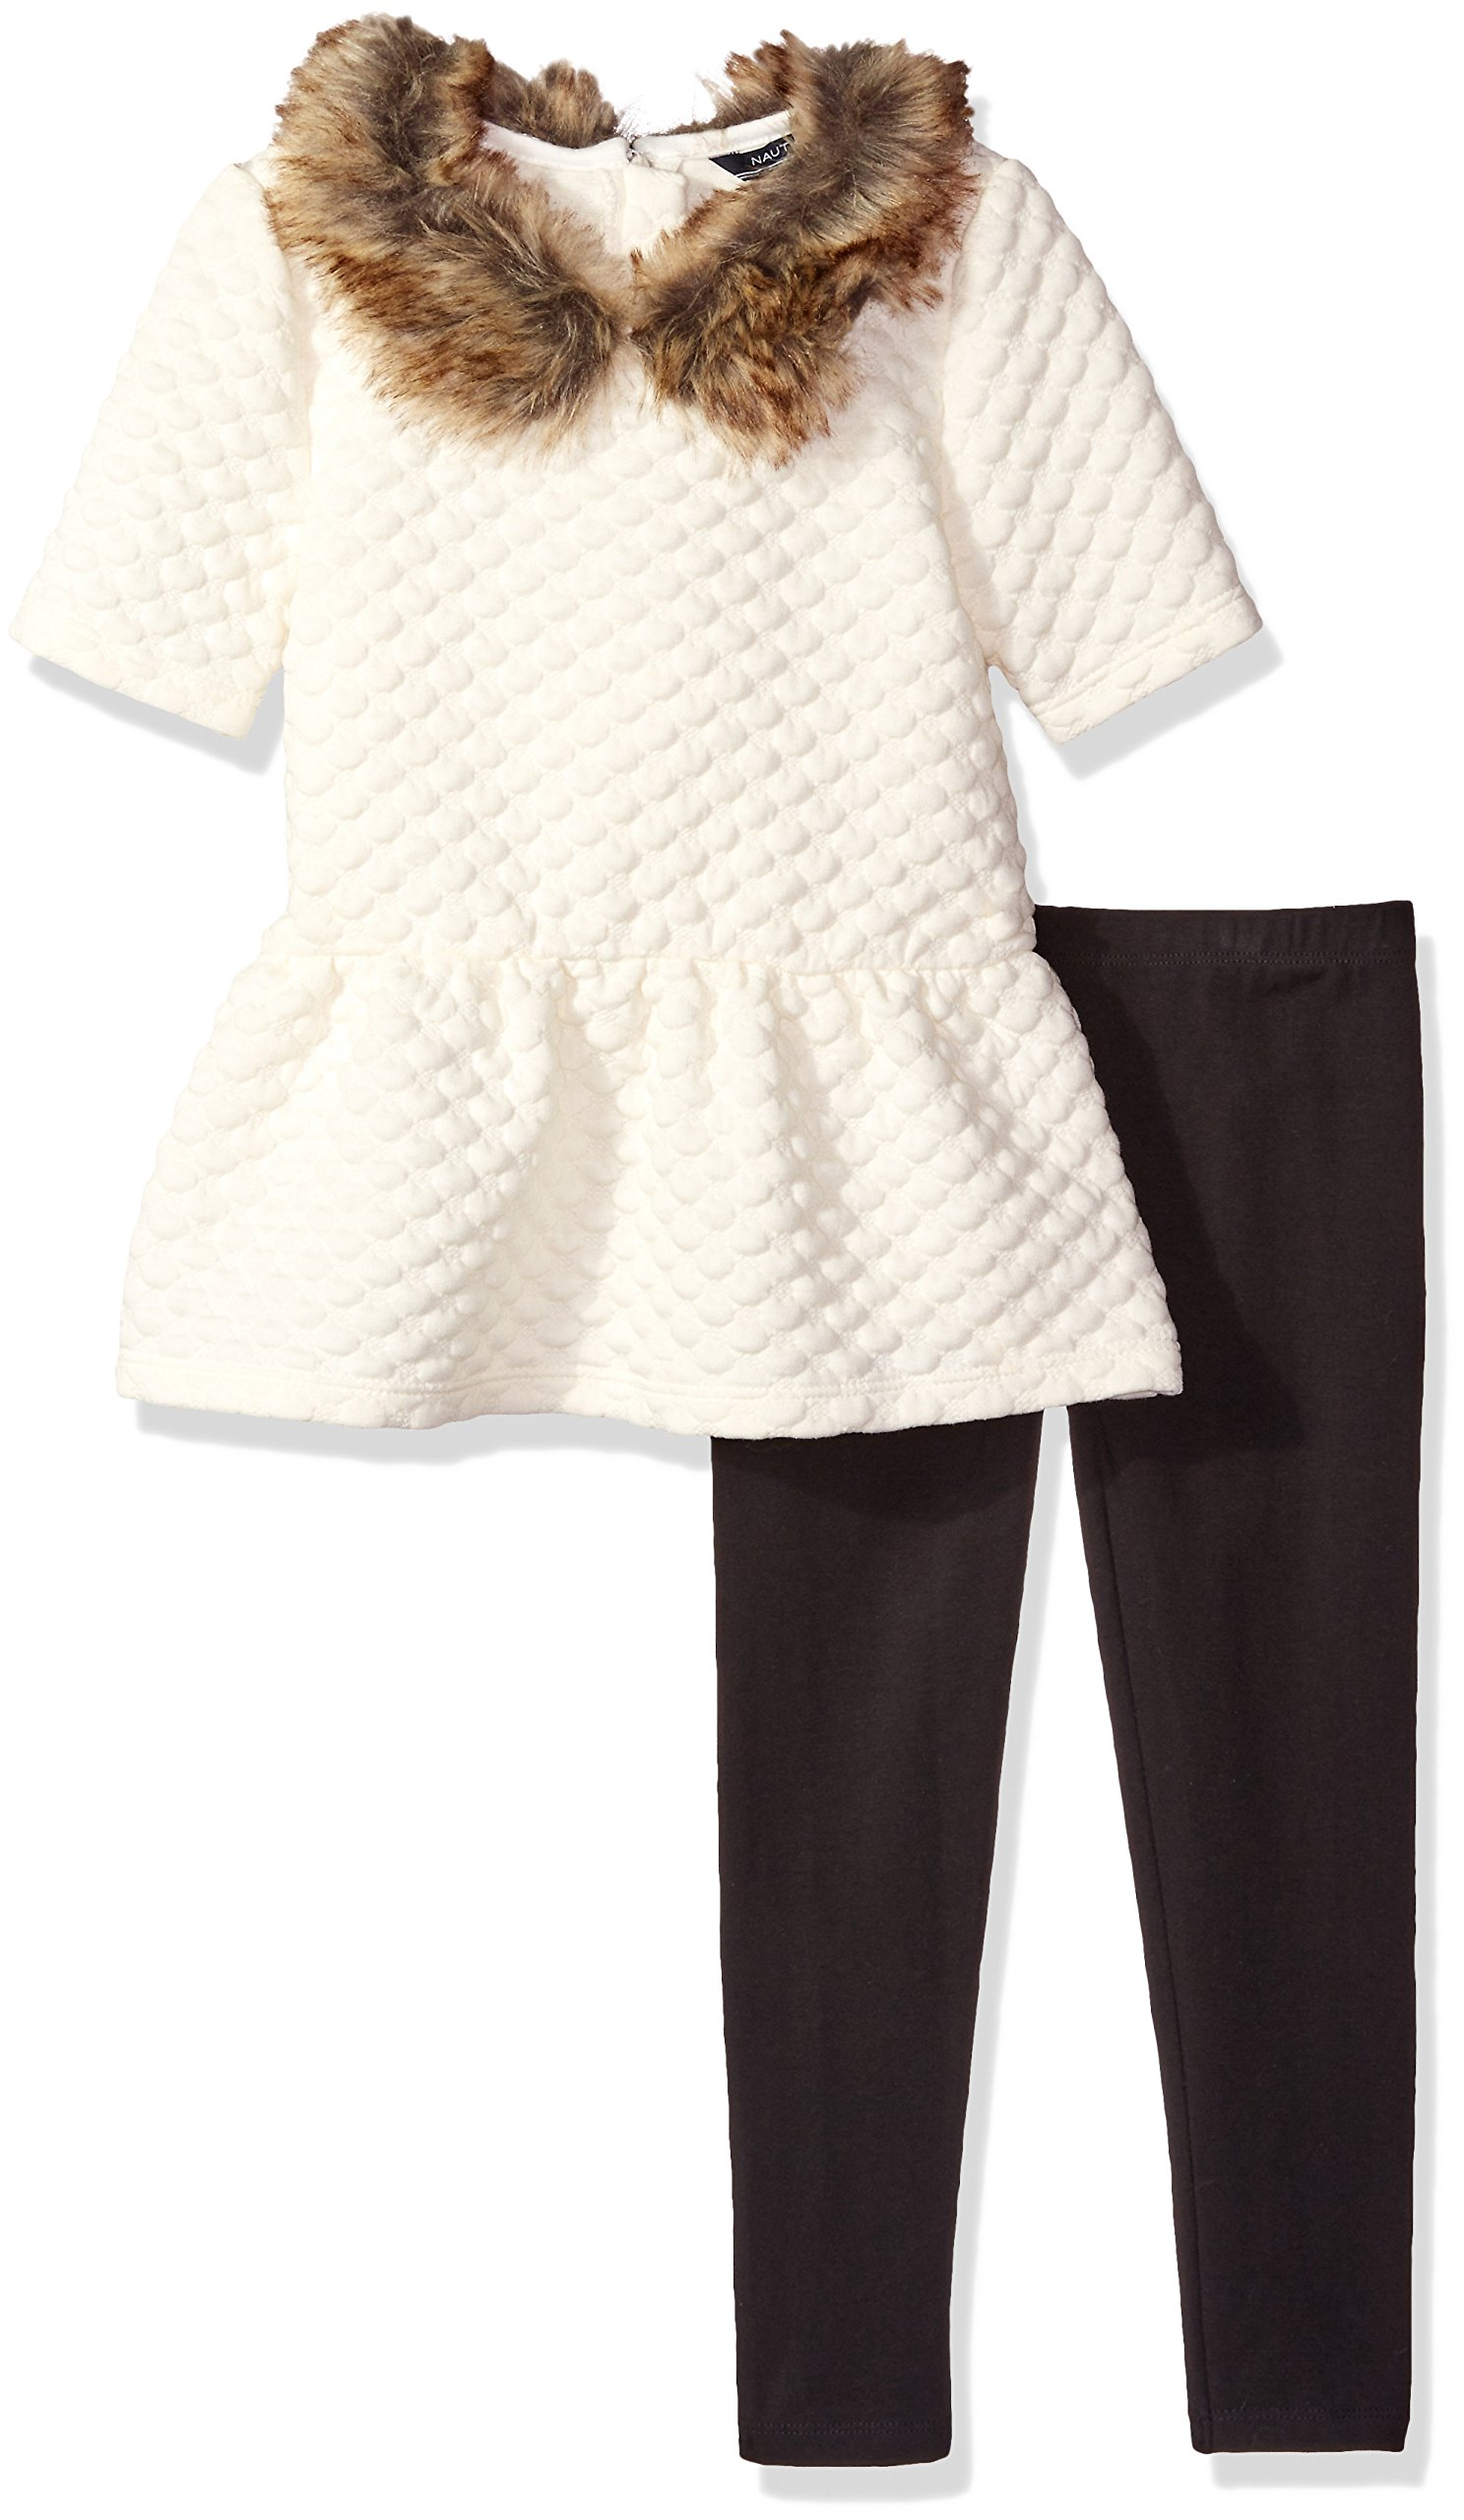 Nautica Little Girls Knit Top With Removable Faux Fur Collar and Legging Set, Cream, 4